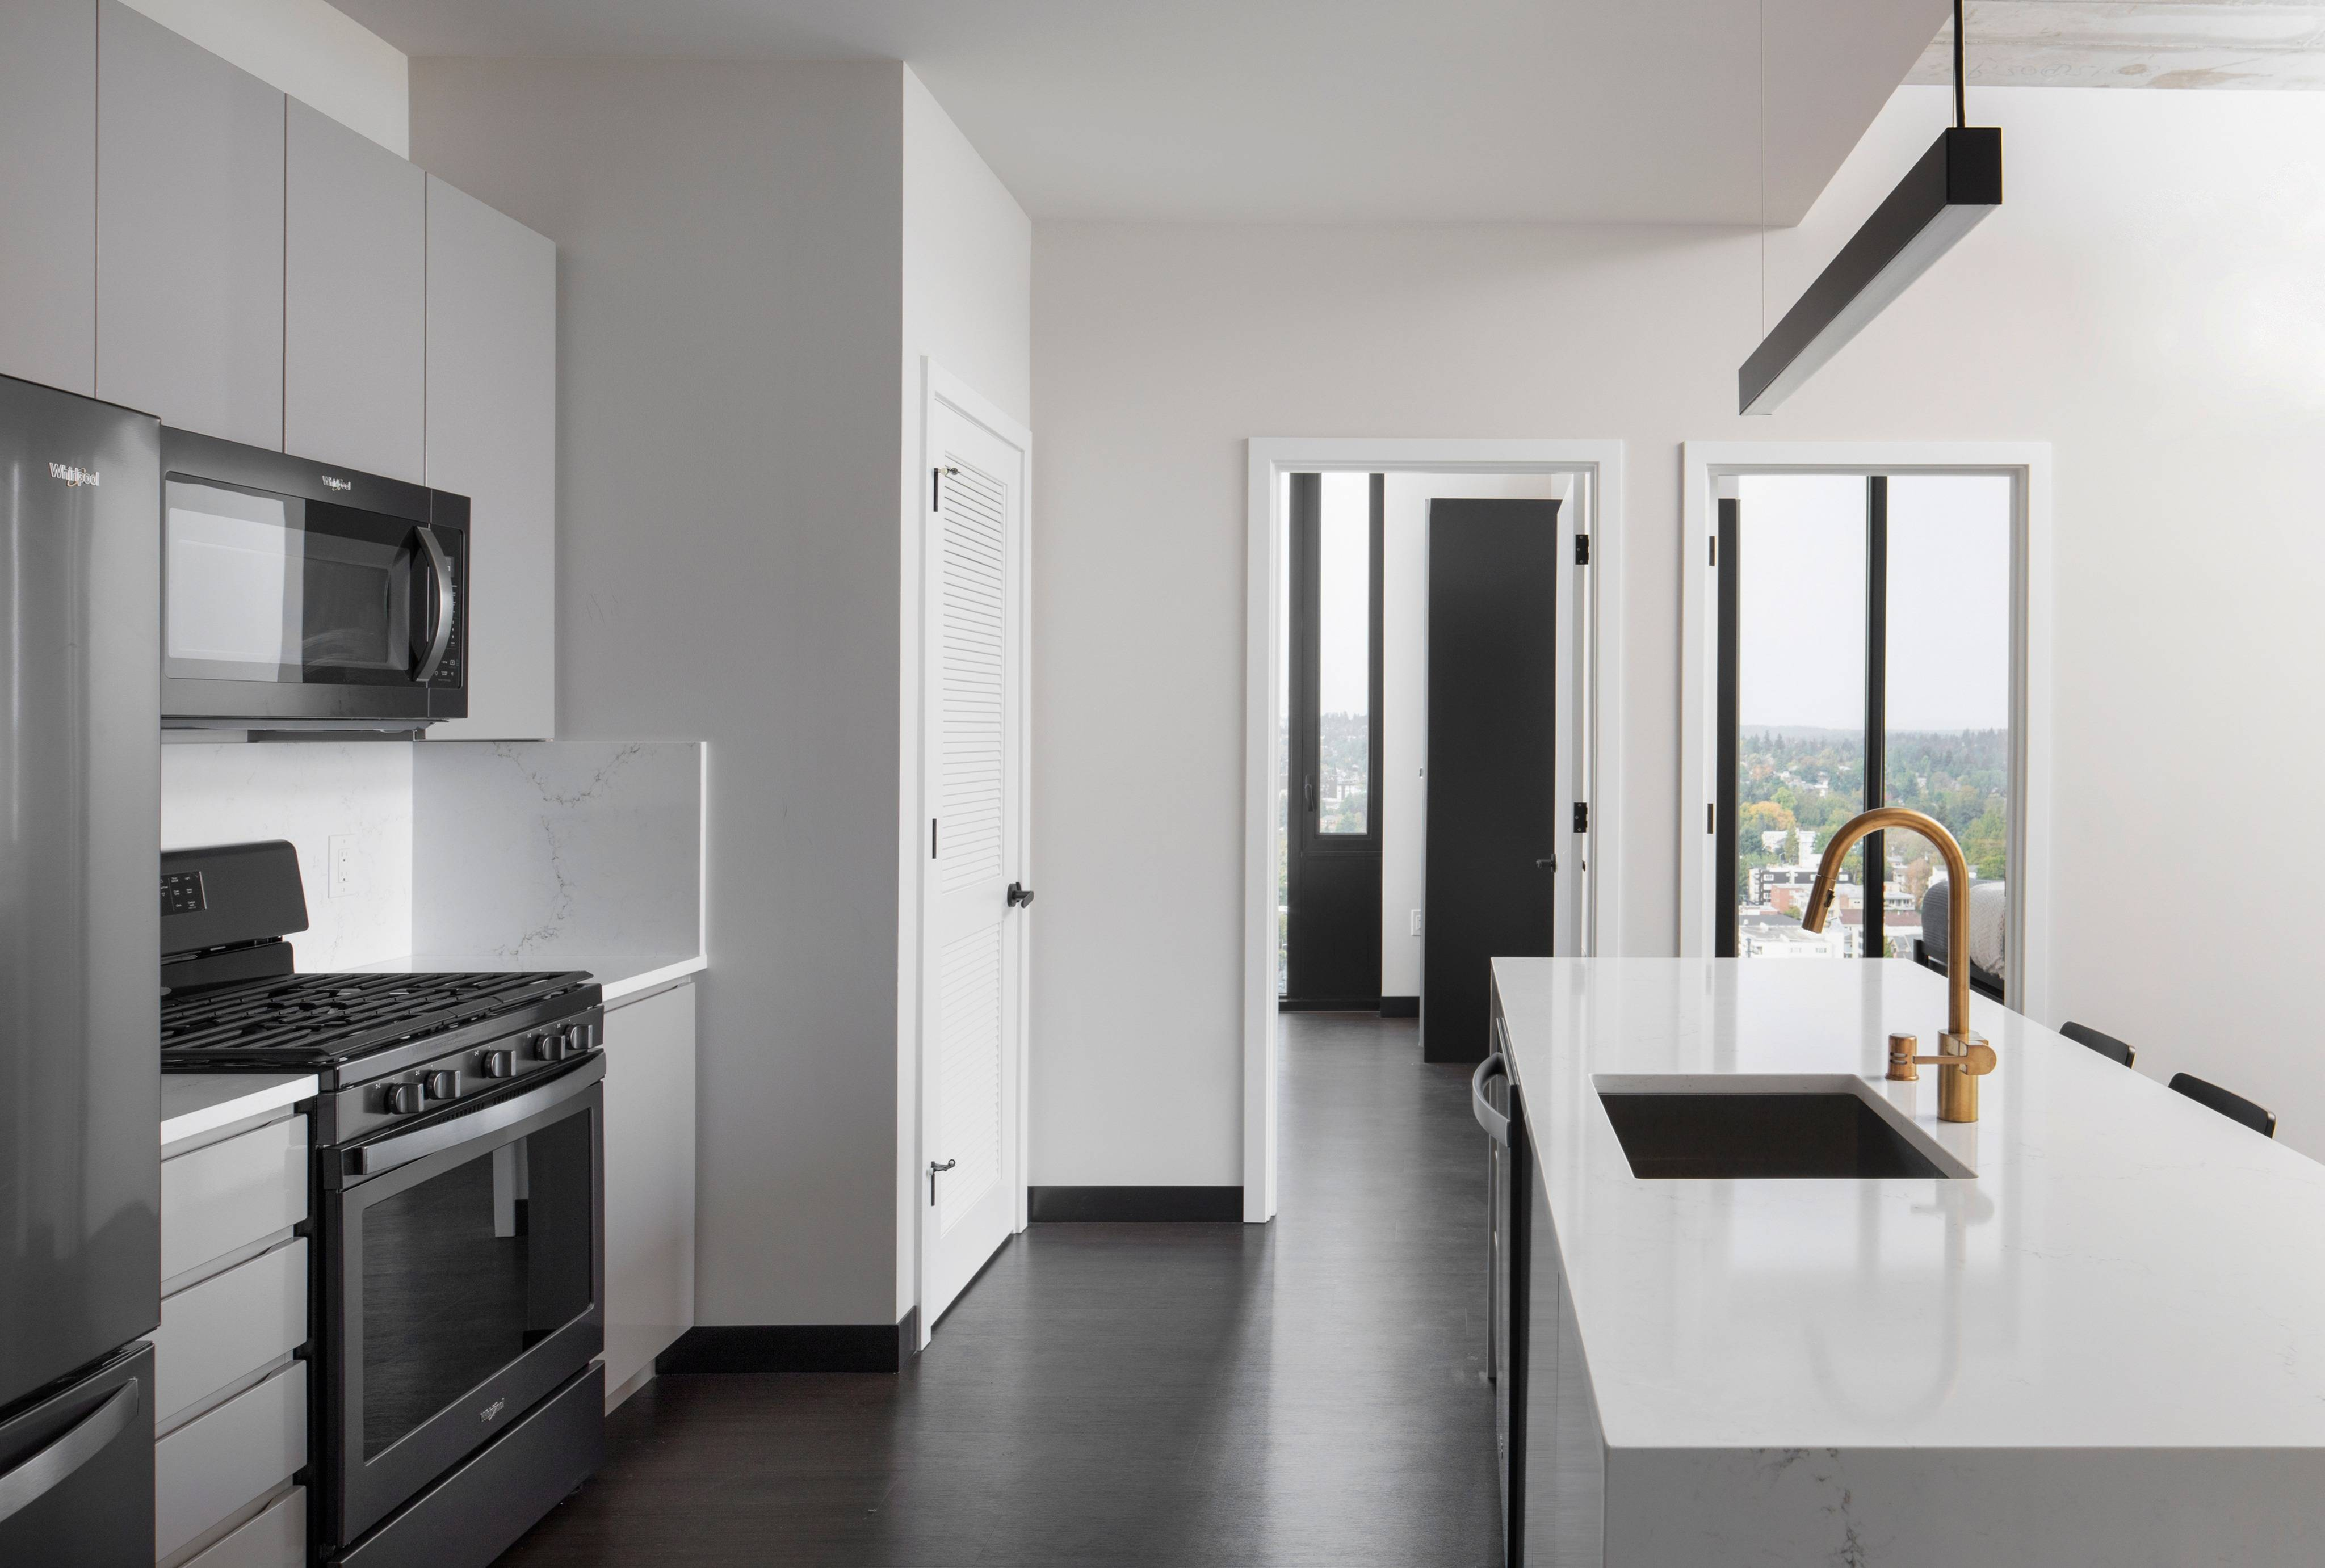 Kitchen with updated appliances